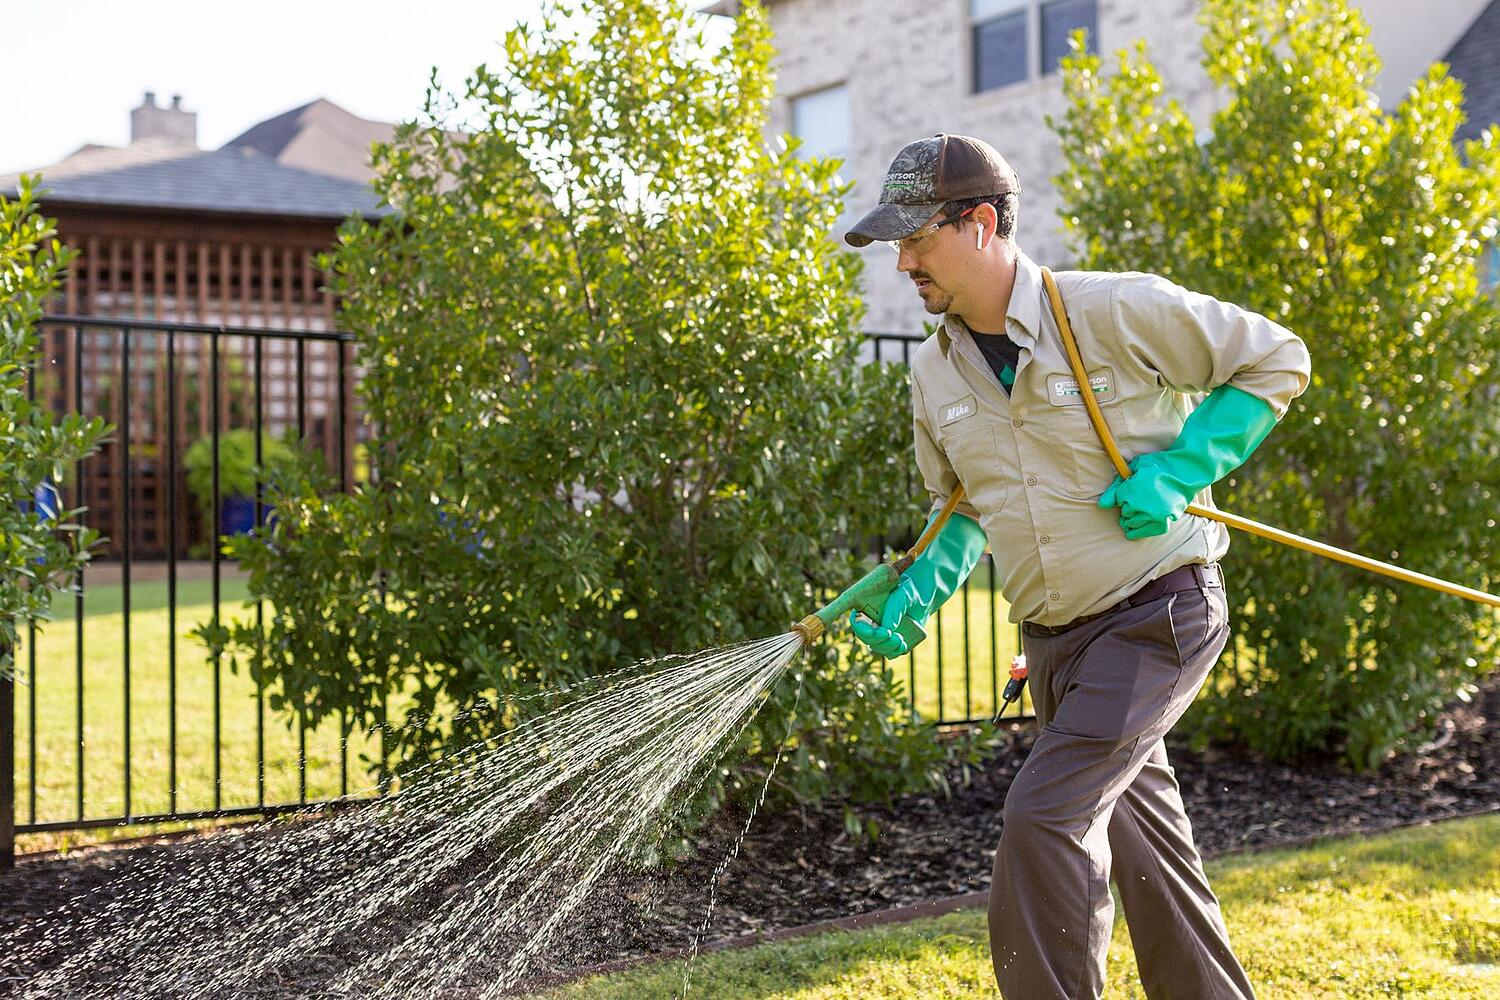 lawn care technician spraying weed control in Texas